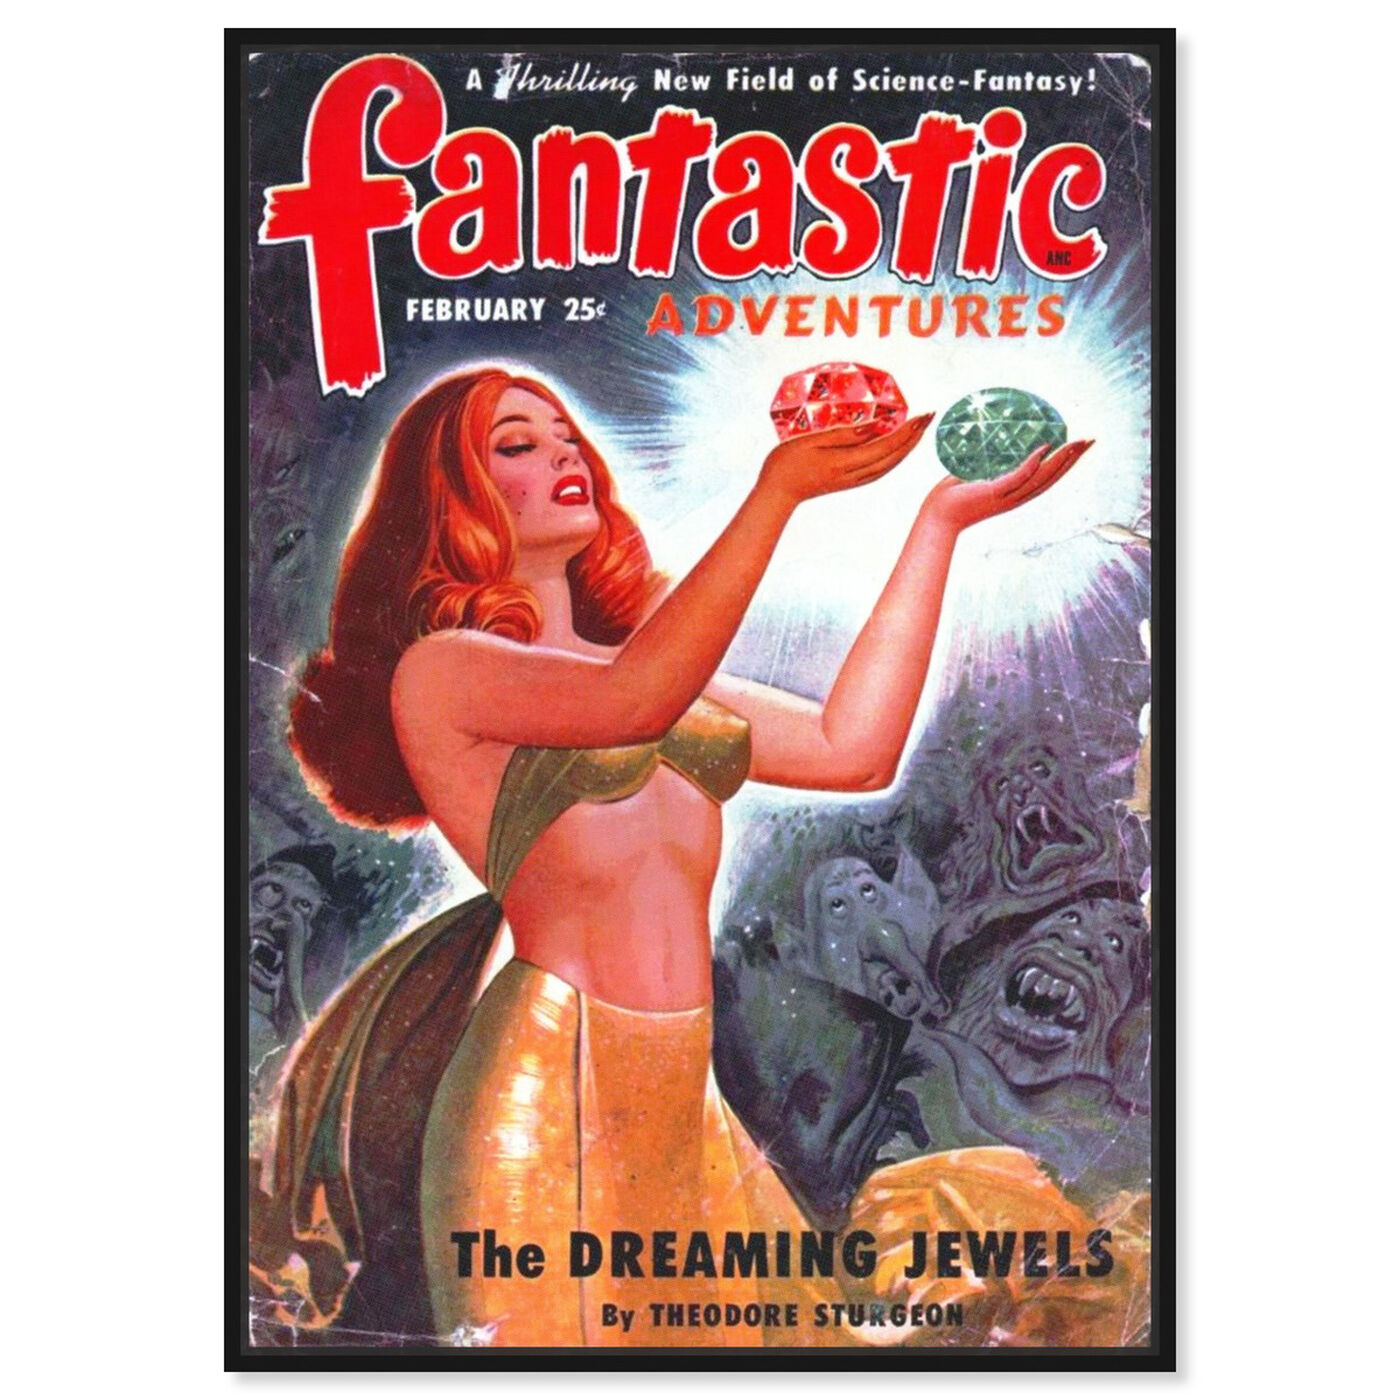 Front view of Fantastic Adventures featuring advertising and posters art.